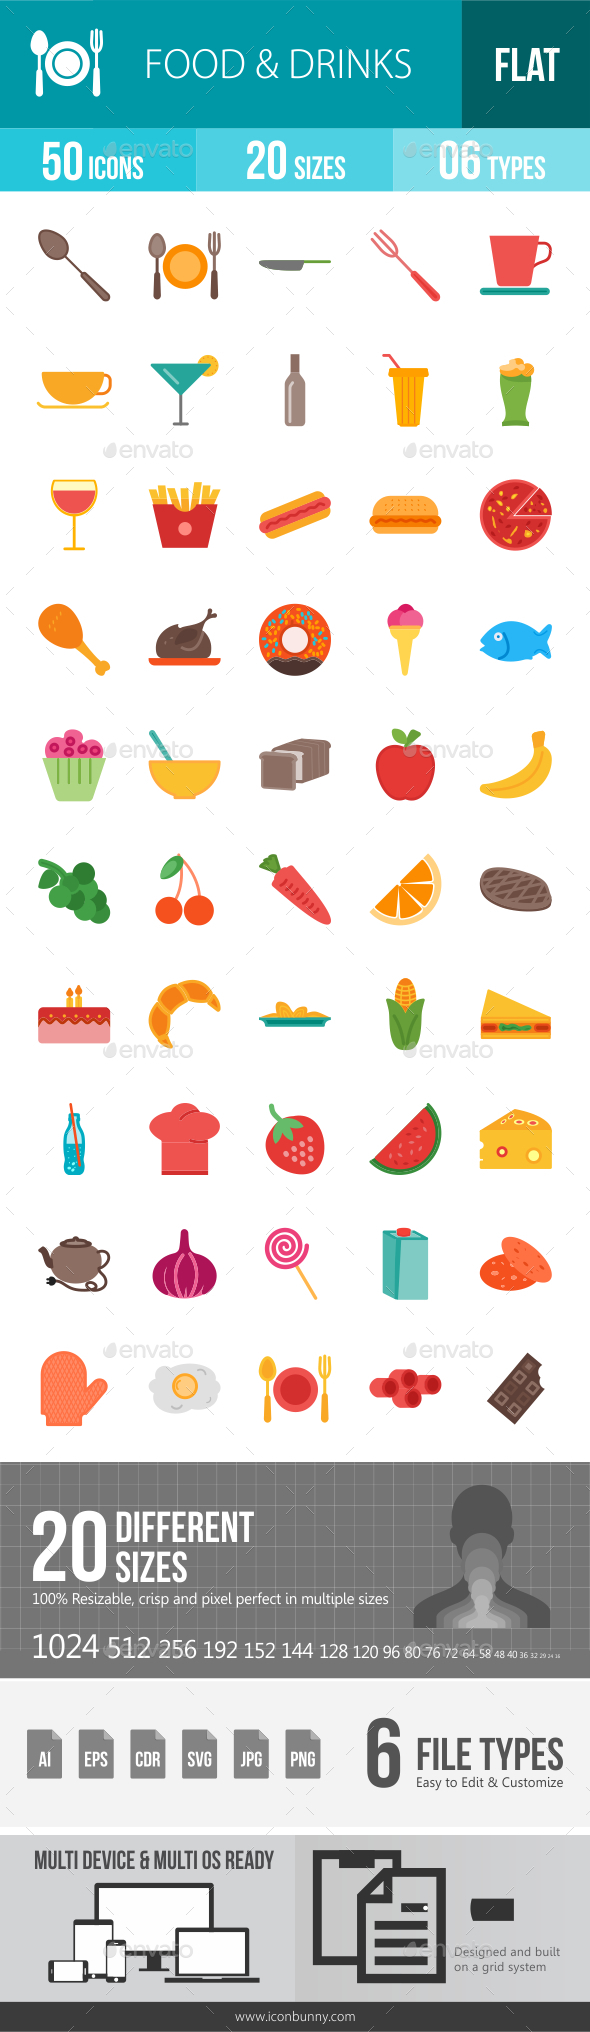 Food & Drinks Flat Multicolor Icons